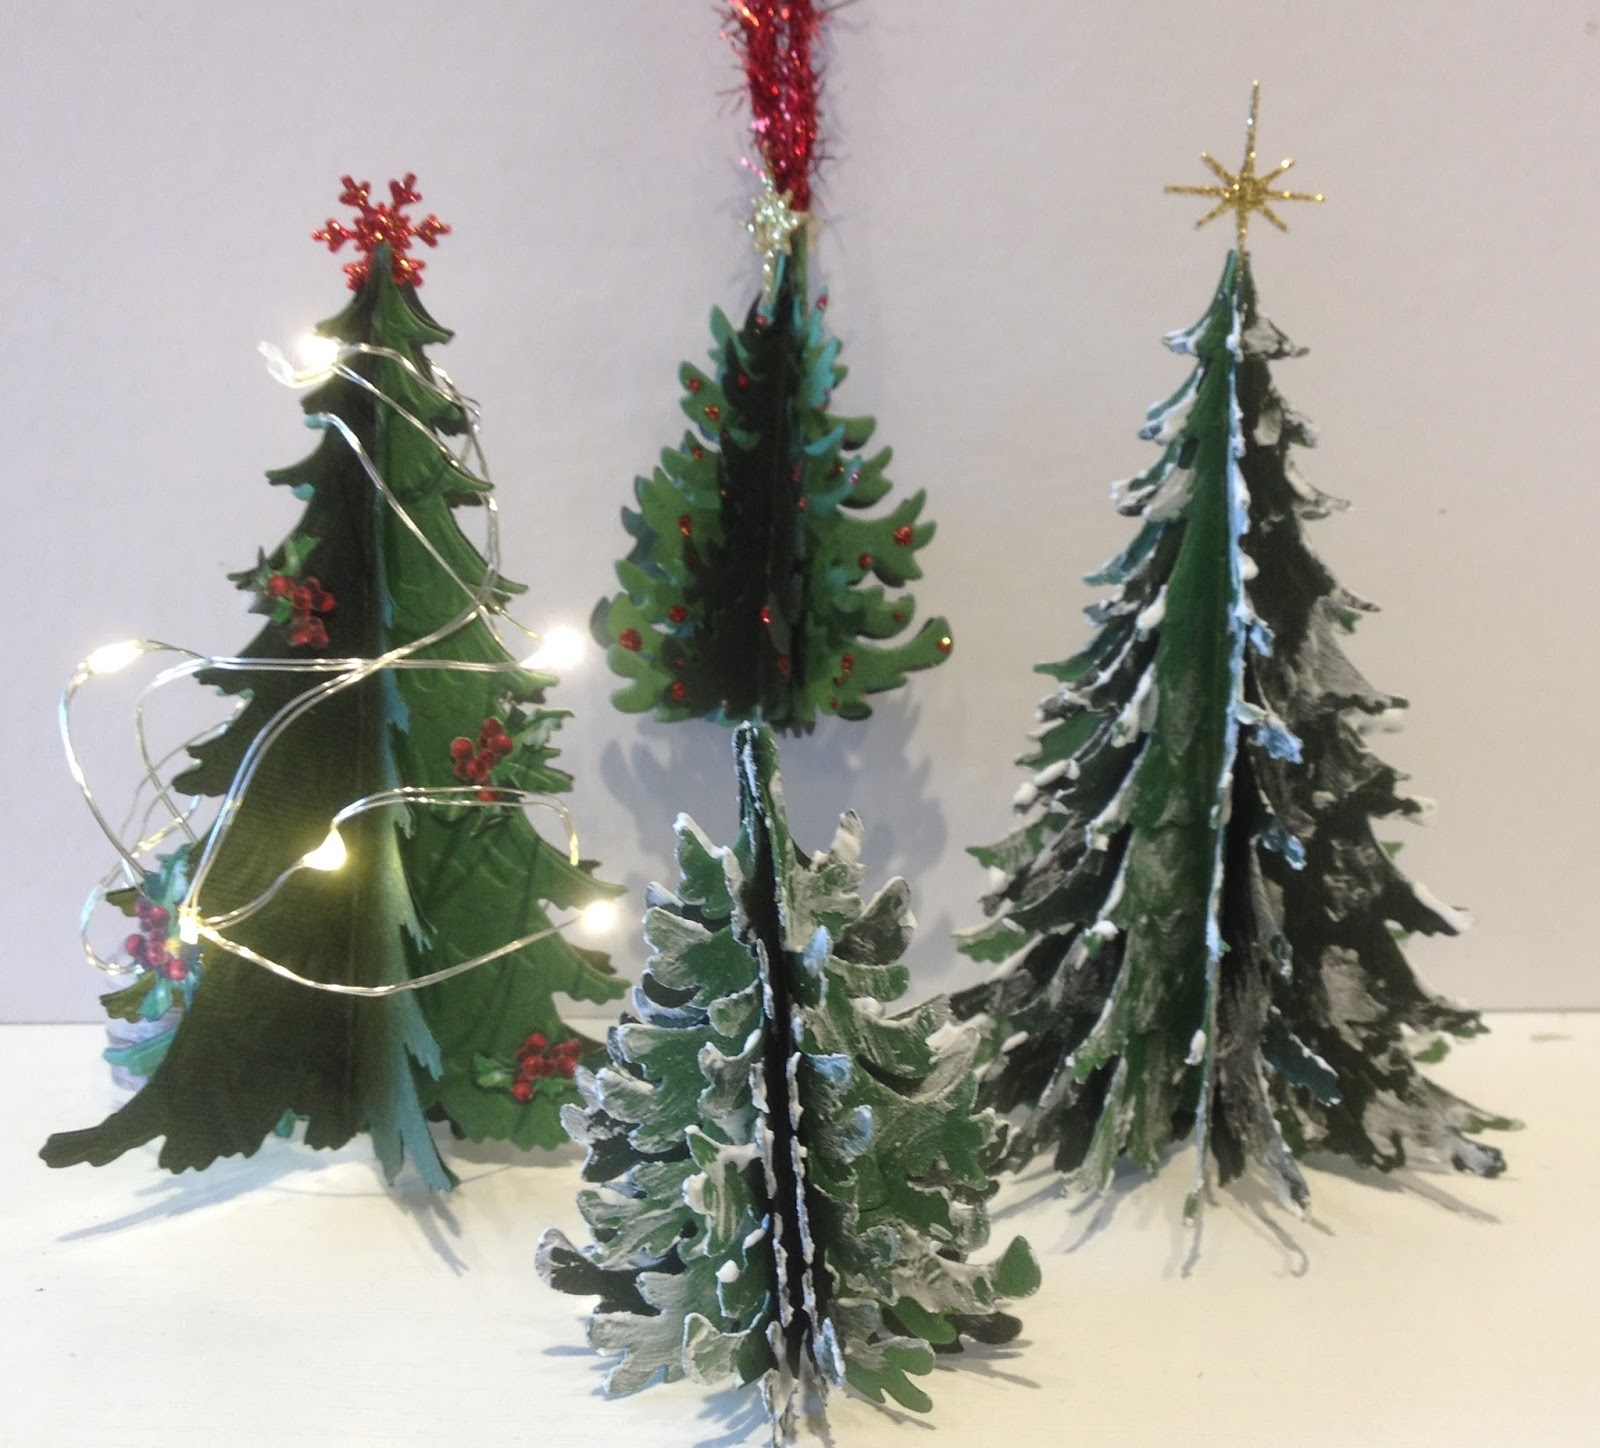 Annes Papercreations 3D Christmas Paper Tree Tutorial - Make 3d Christmas Tree